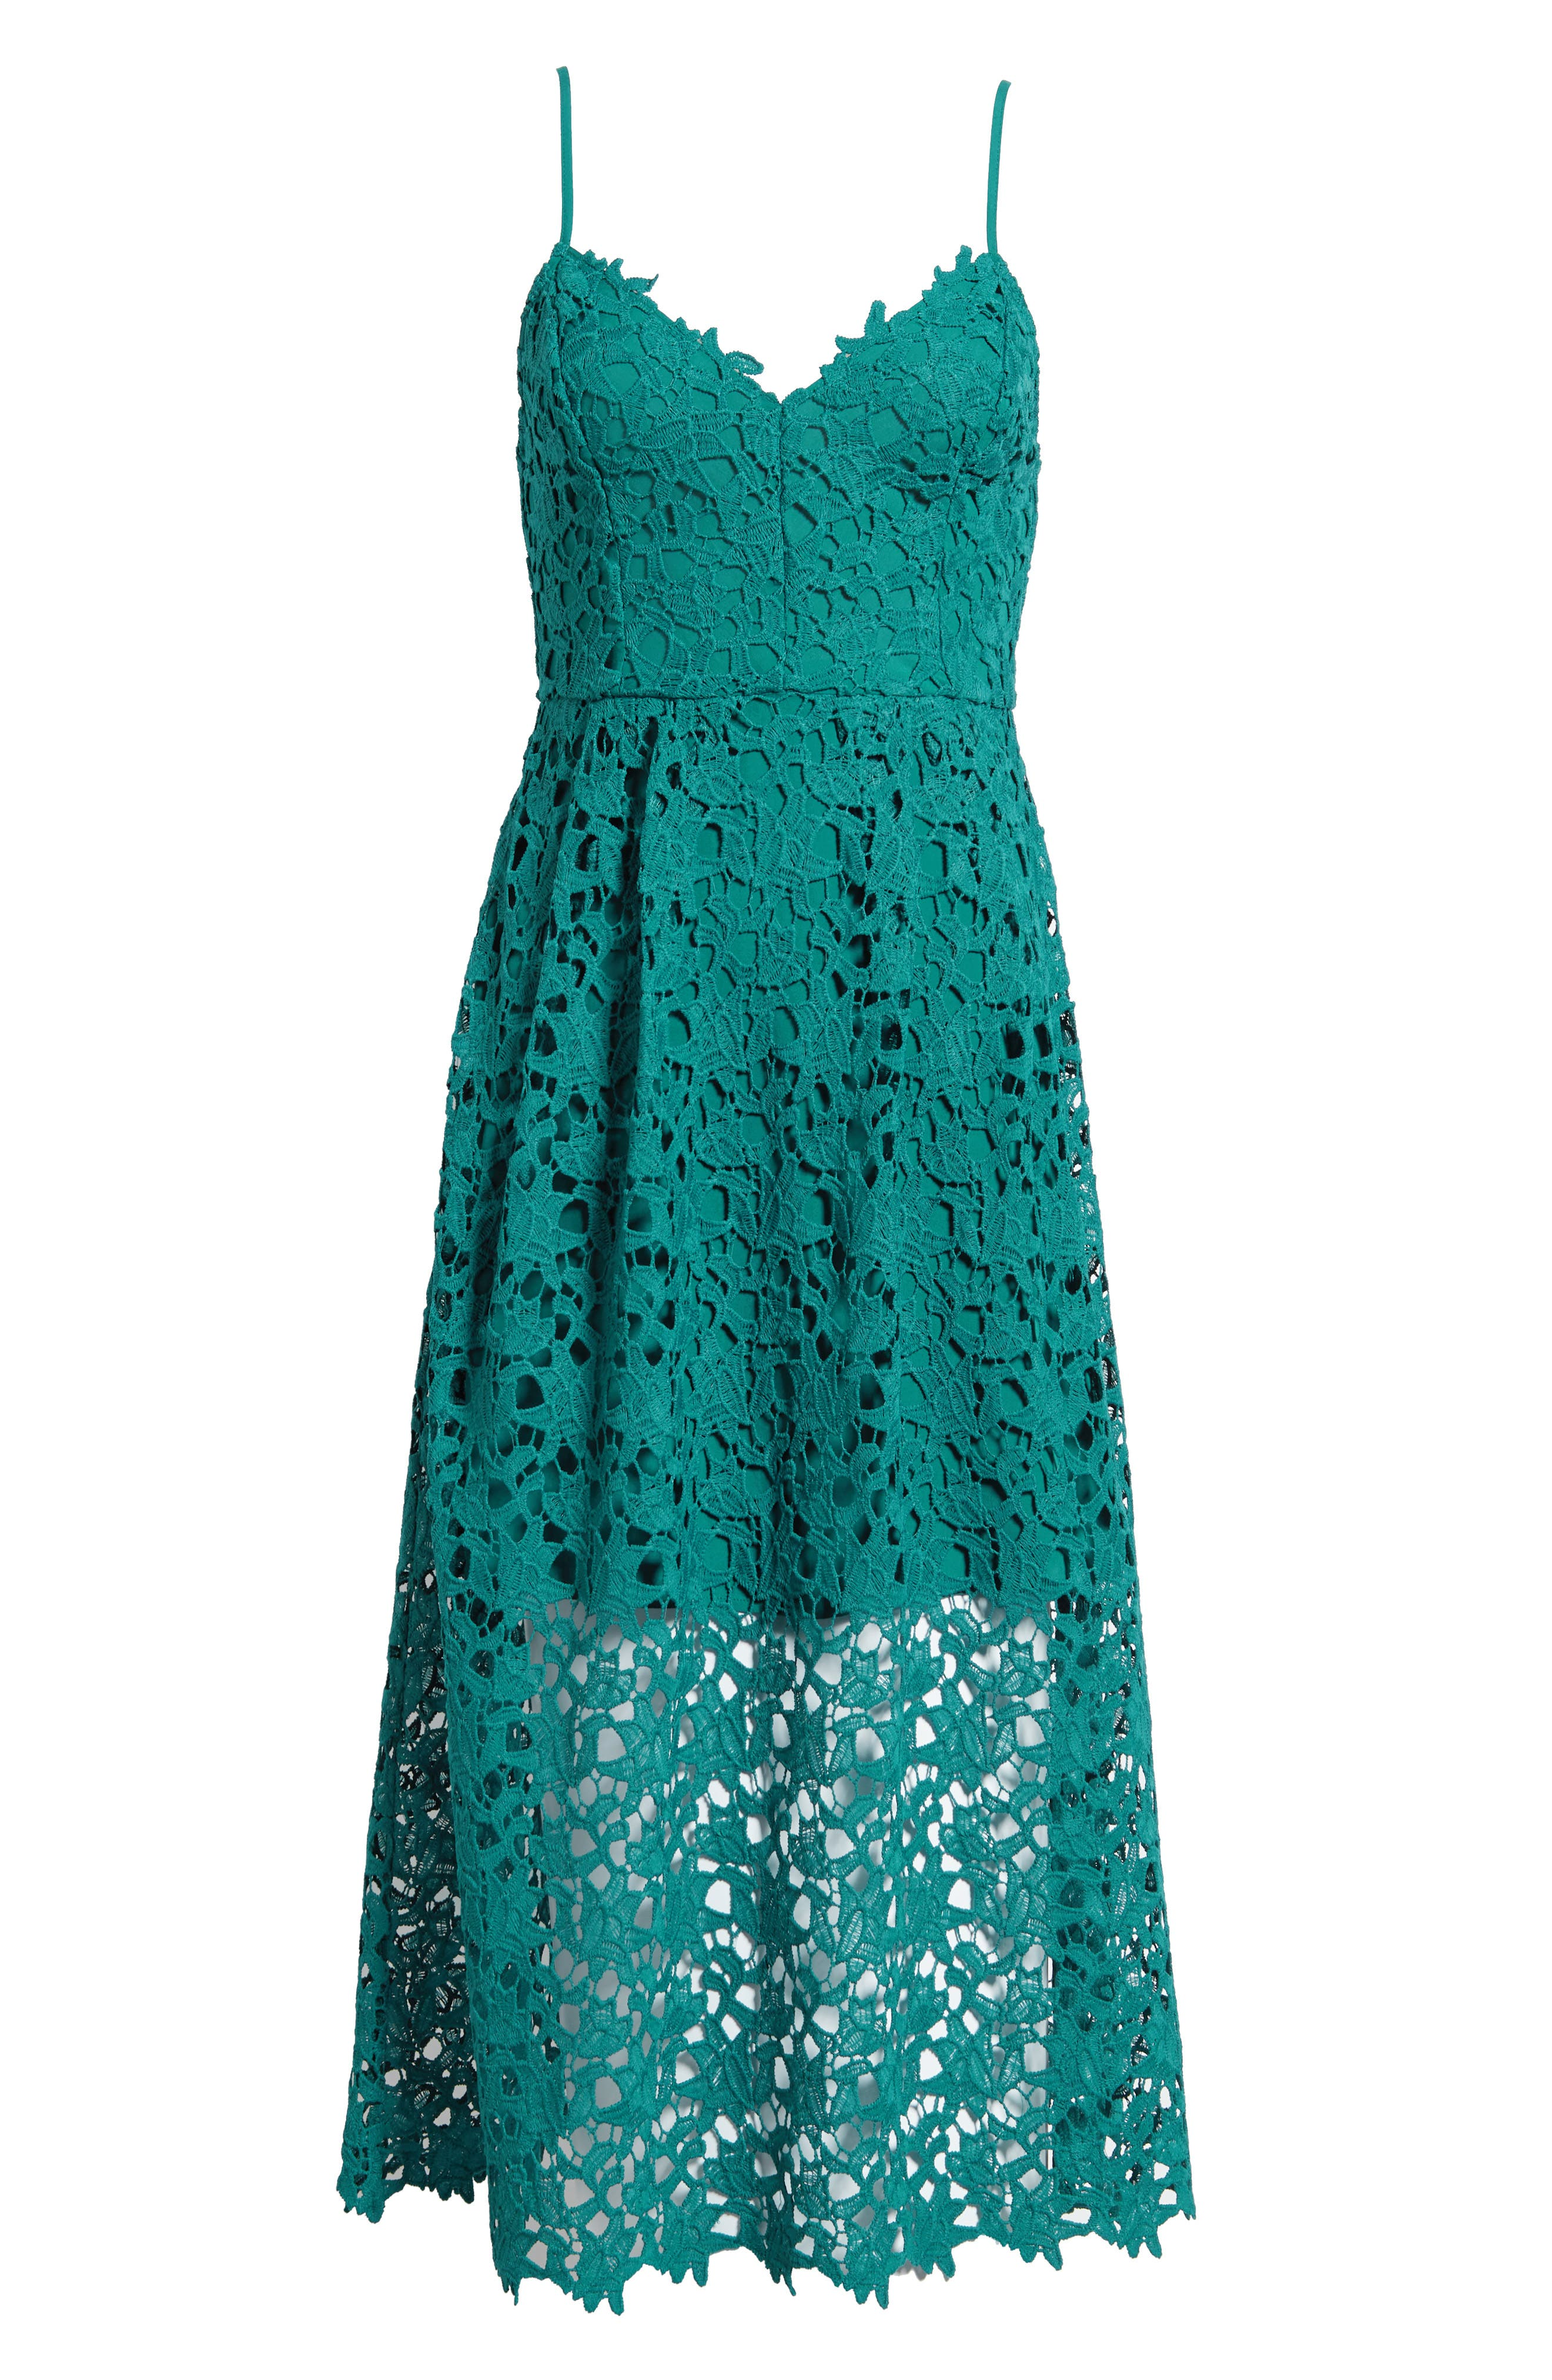 Lace Midi Dress,                             Alternate thumbnail 8, color,                             JADE GREEN